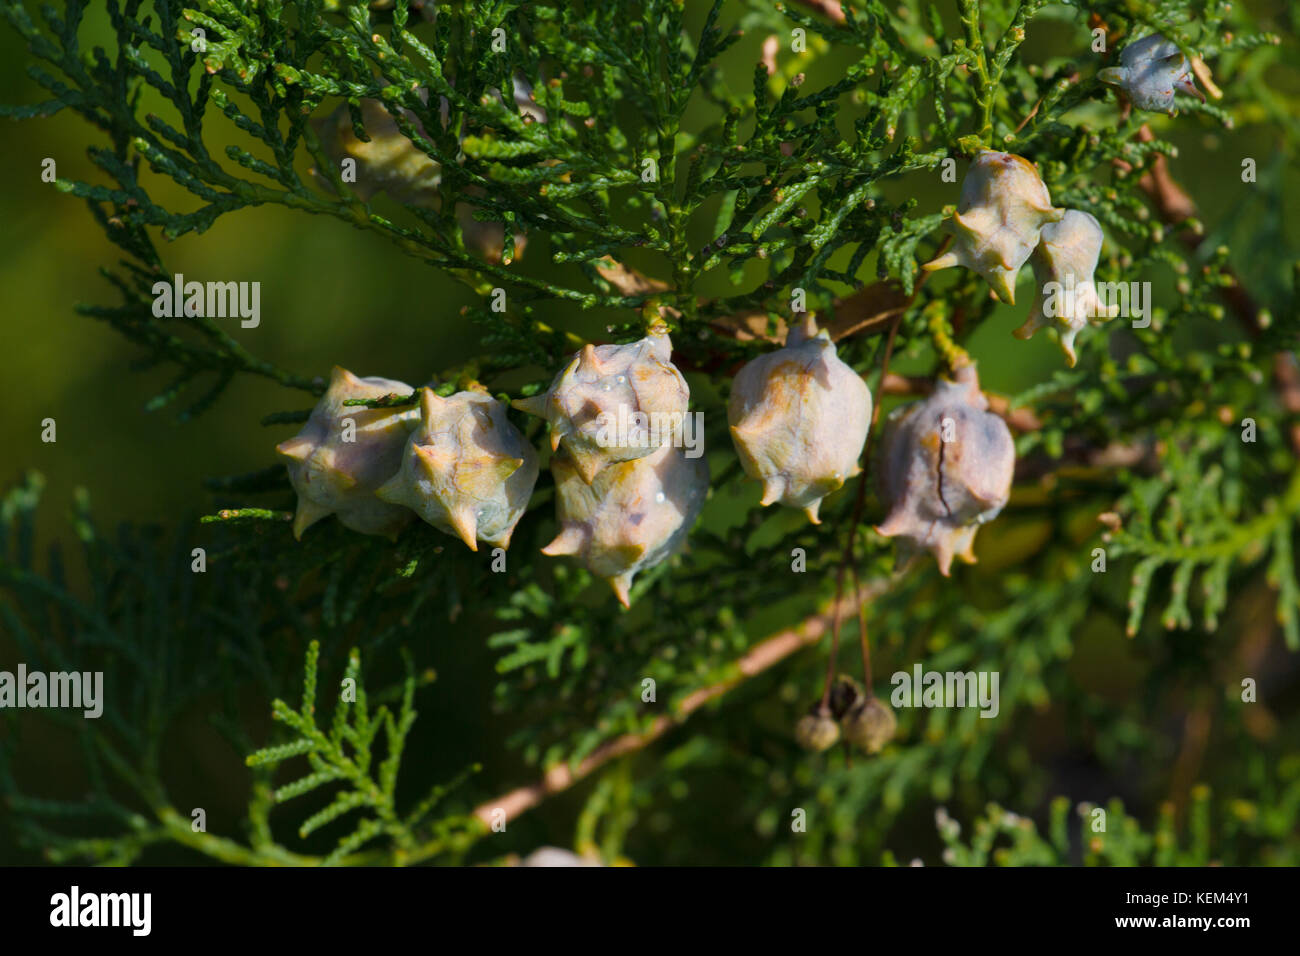 Brunch of thuya with cones. Thuja part of tree. Conifer Stock Photo